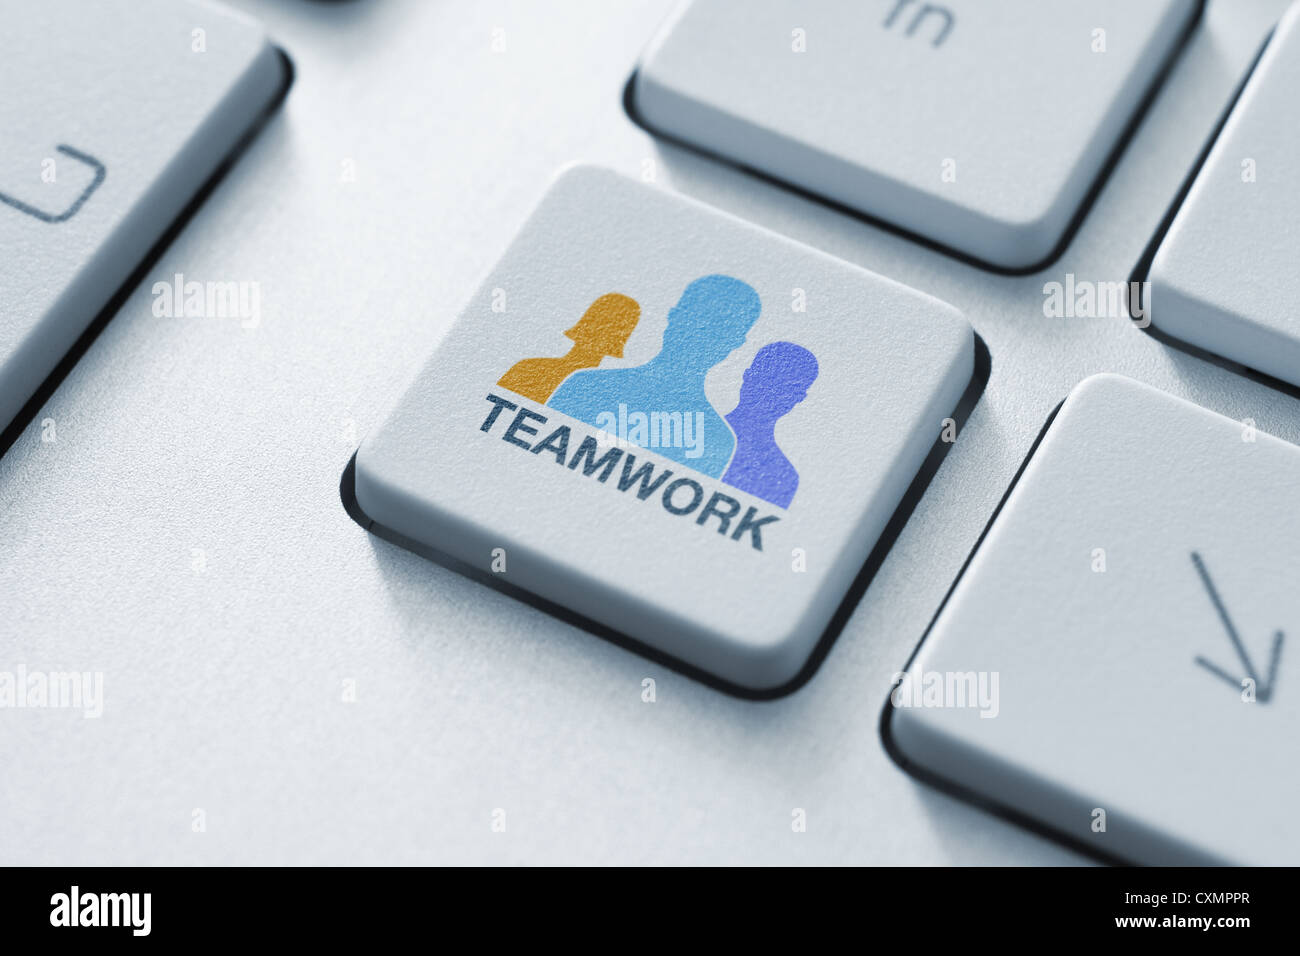 Teamwork key on keyboard concept. Toned image. - Stock Image